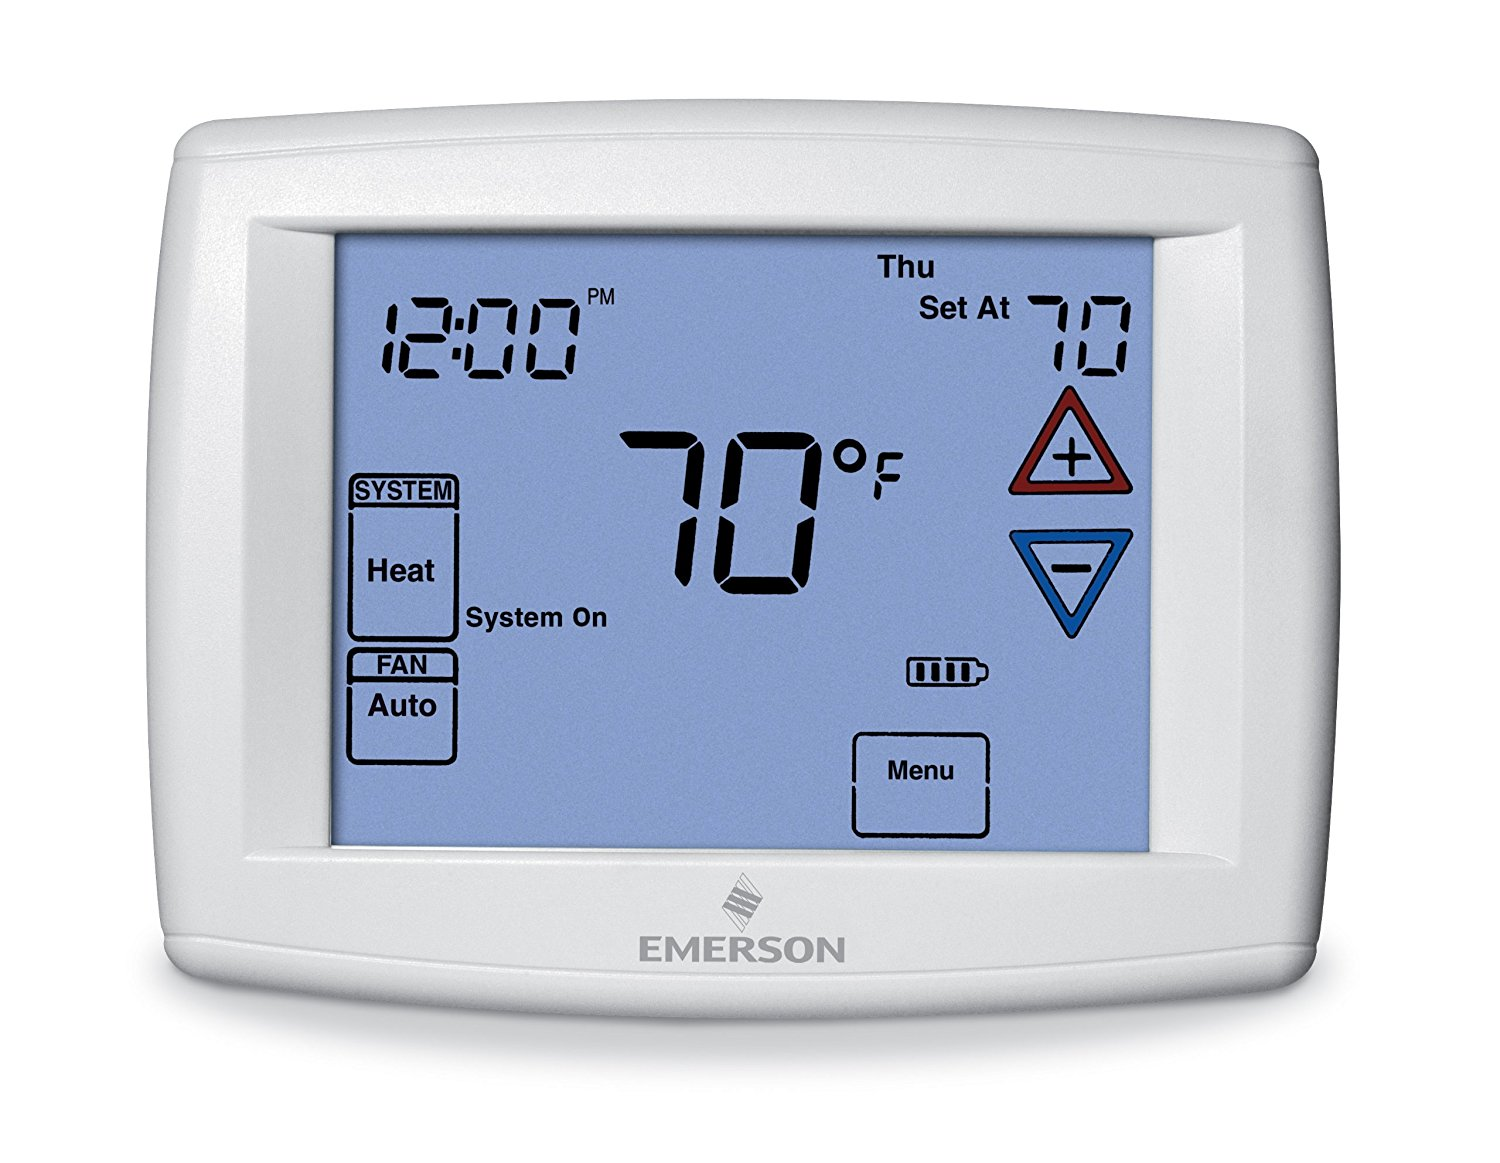 Digital thermostats archives best digital thermostat reviews and emerson 1f95 1277 universal touchscreen 7 day programmable thermostat biocorpaavc Choice Image